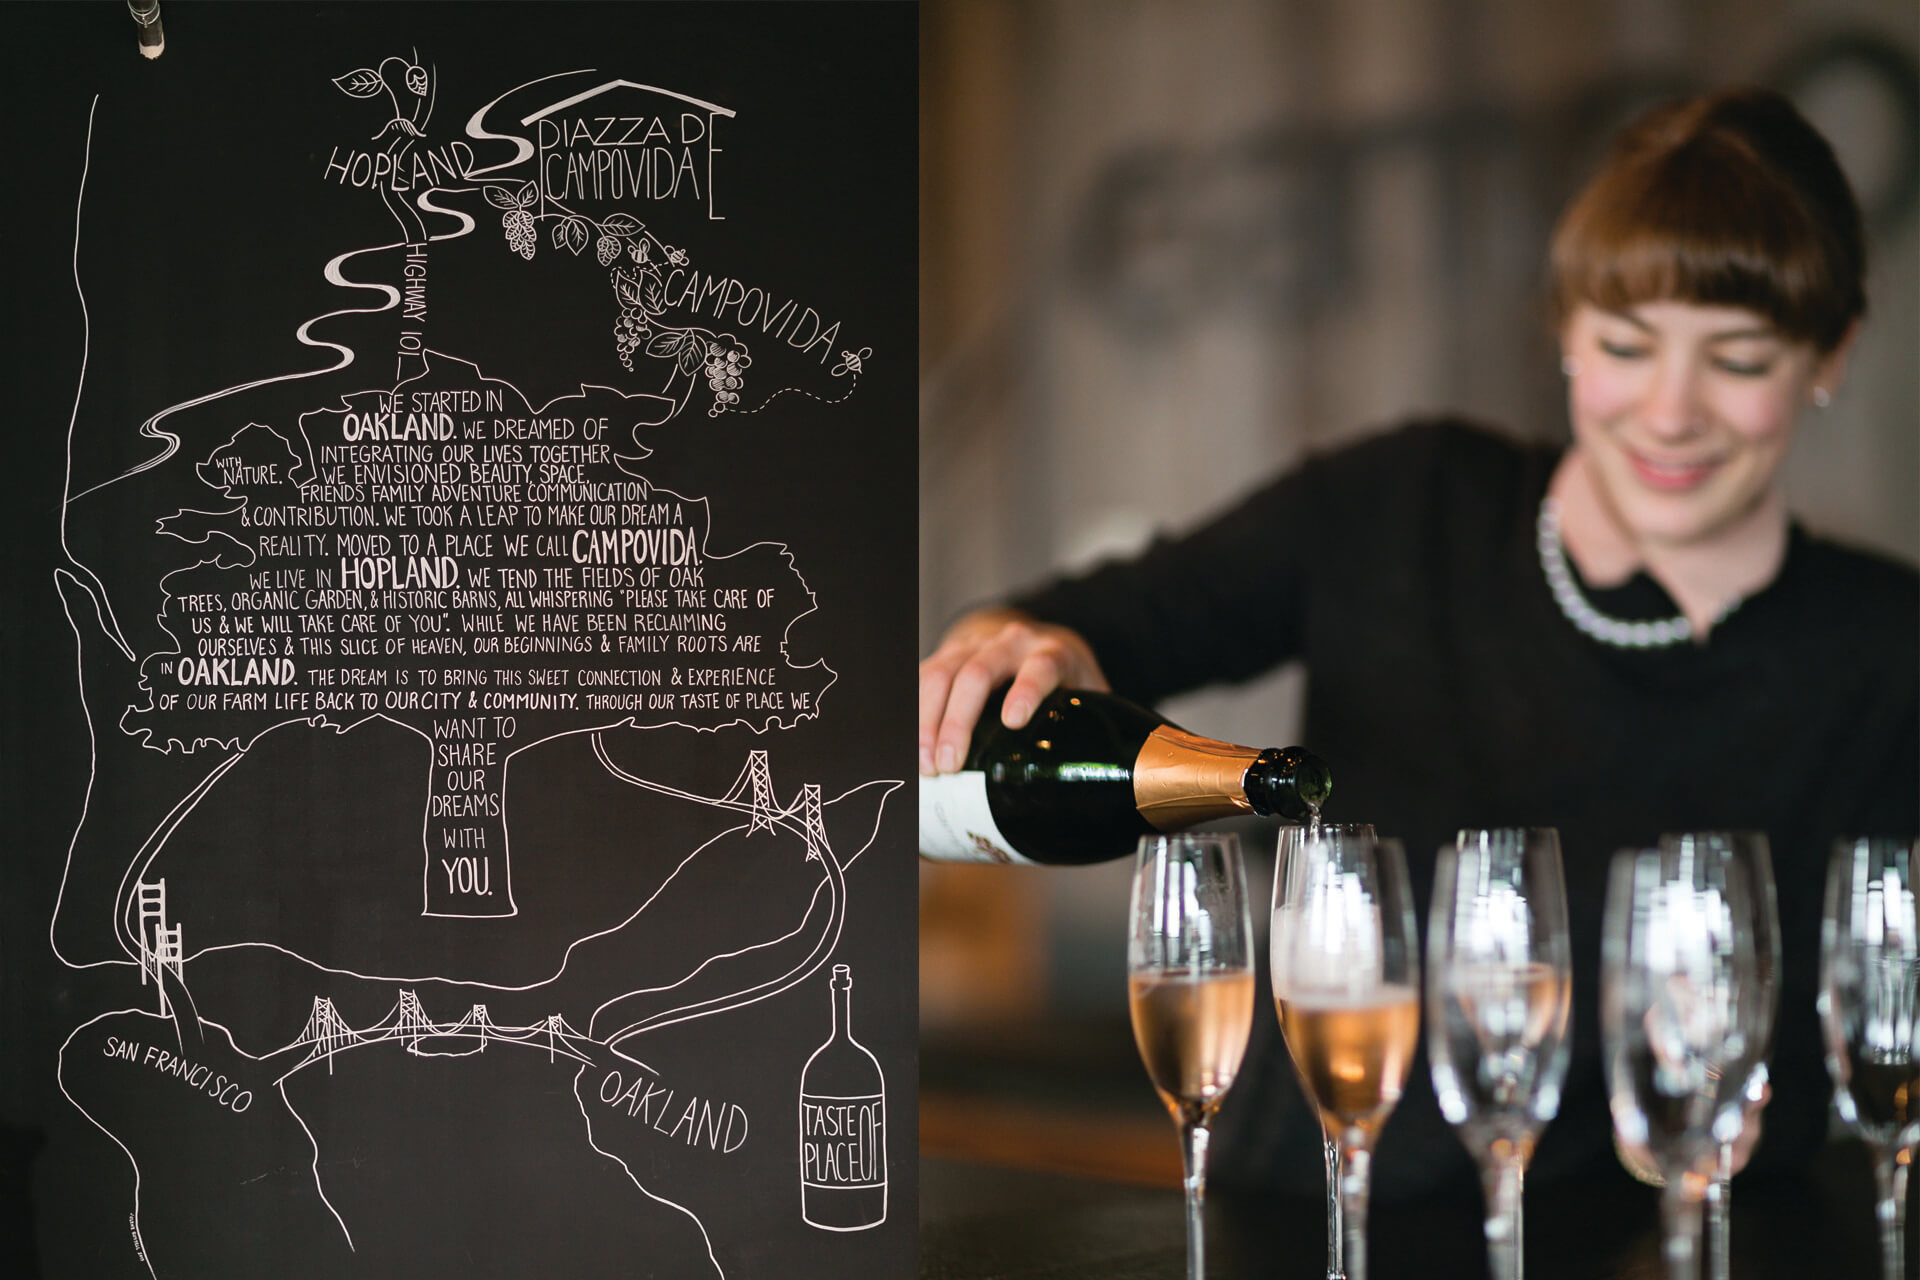 Left image of chalk board drawing about the winery, right image of woman pouring wine